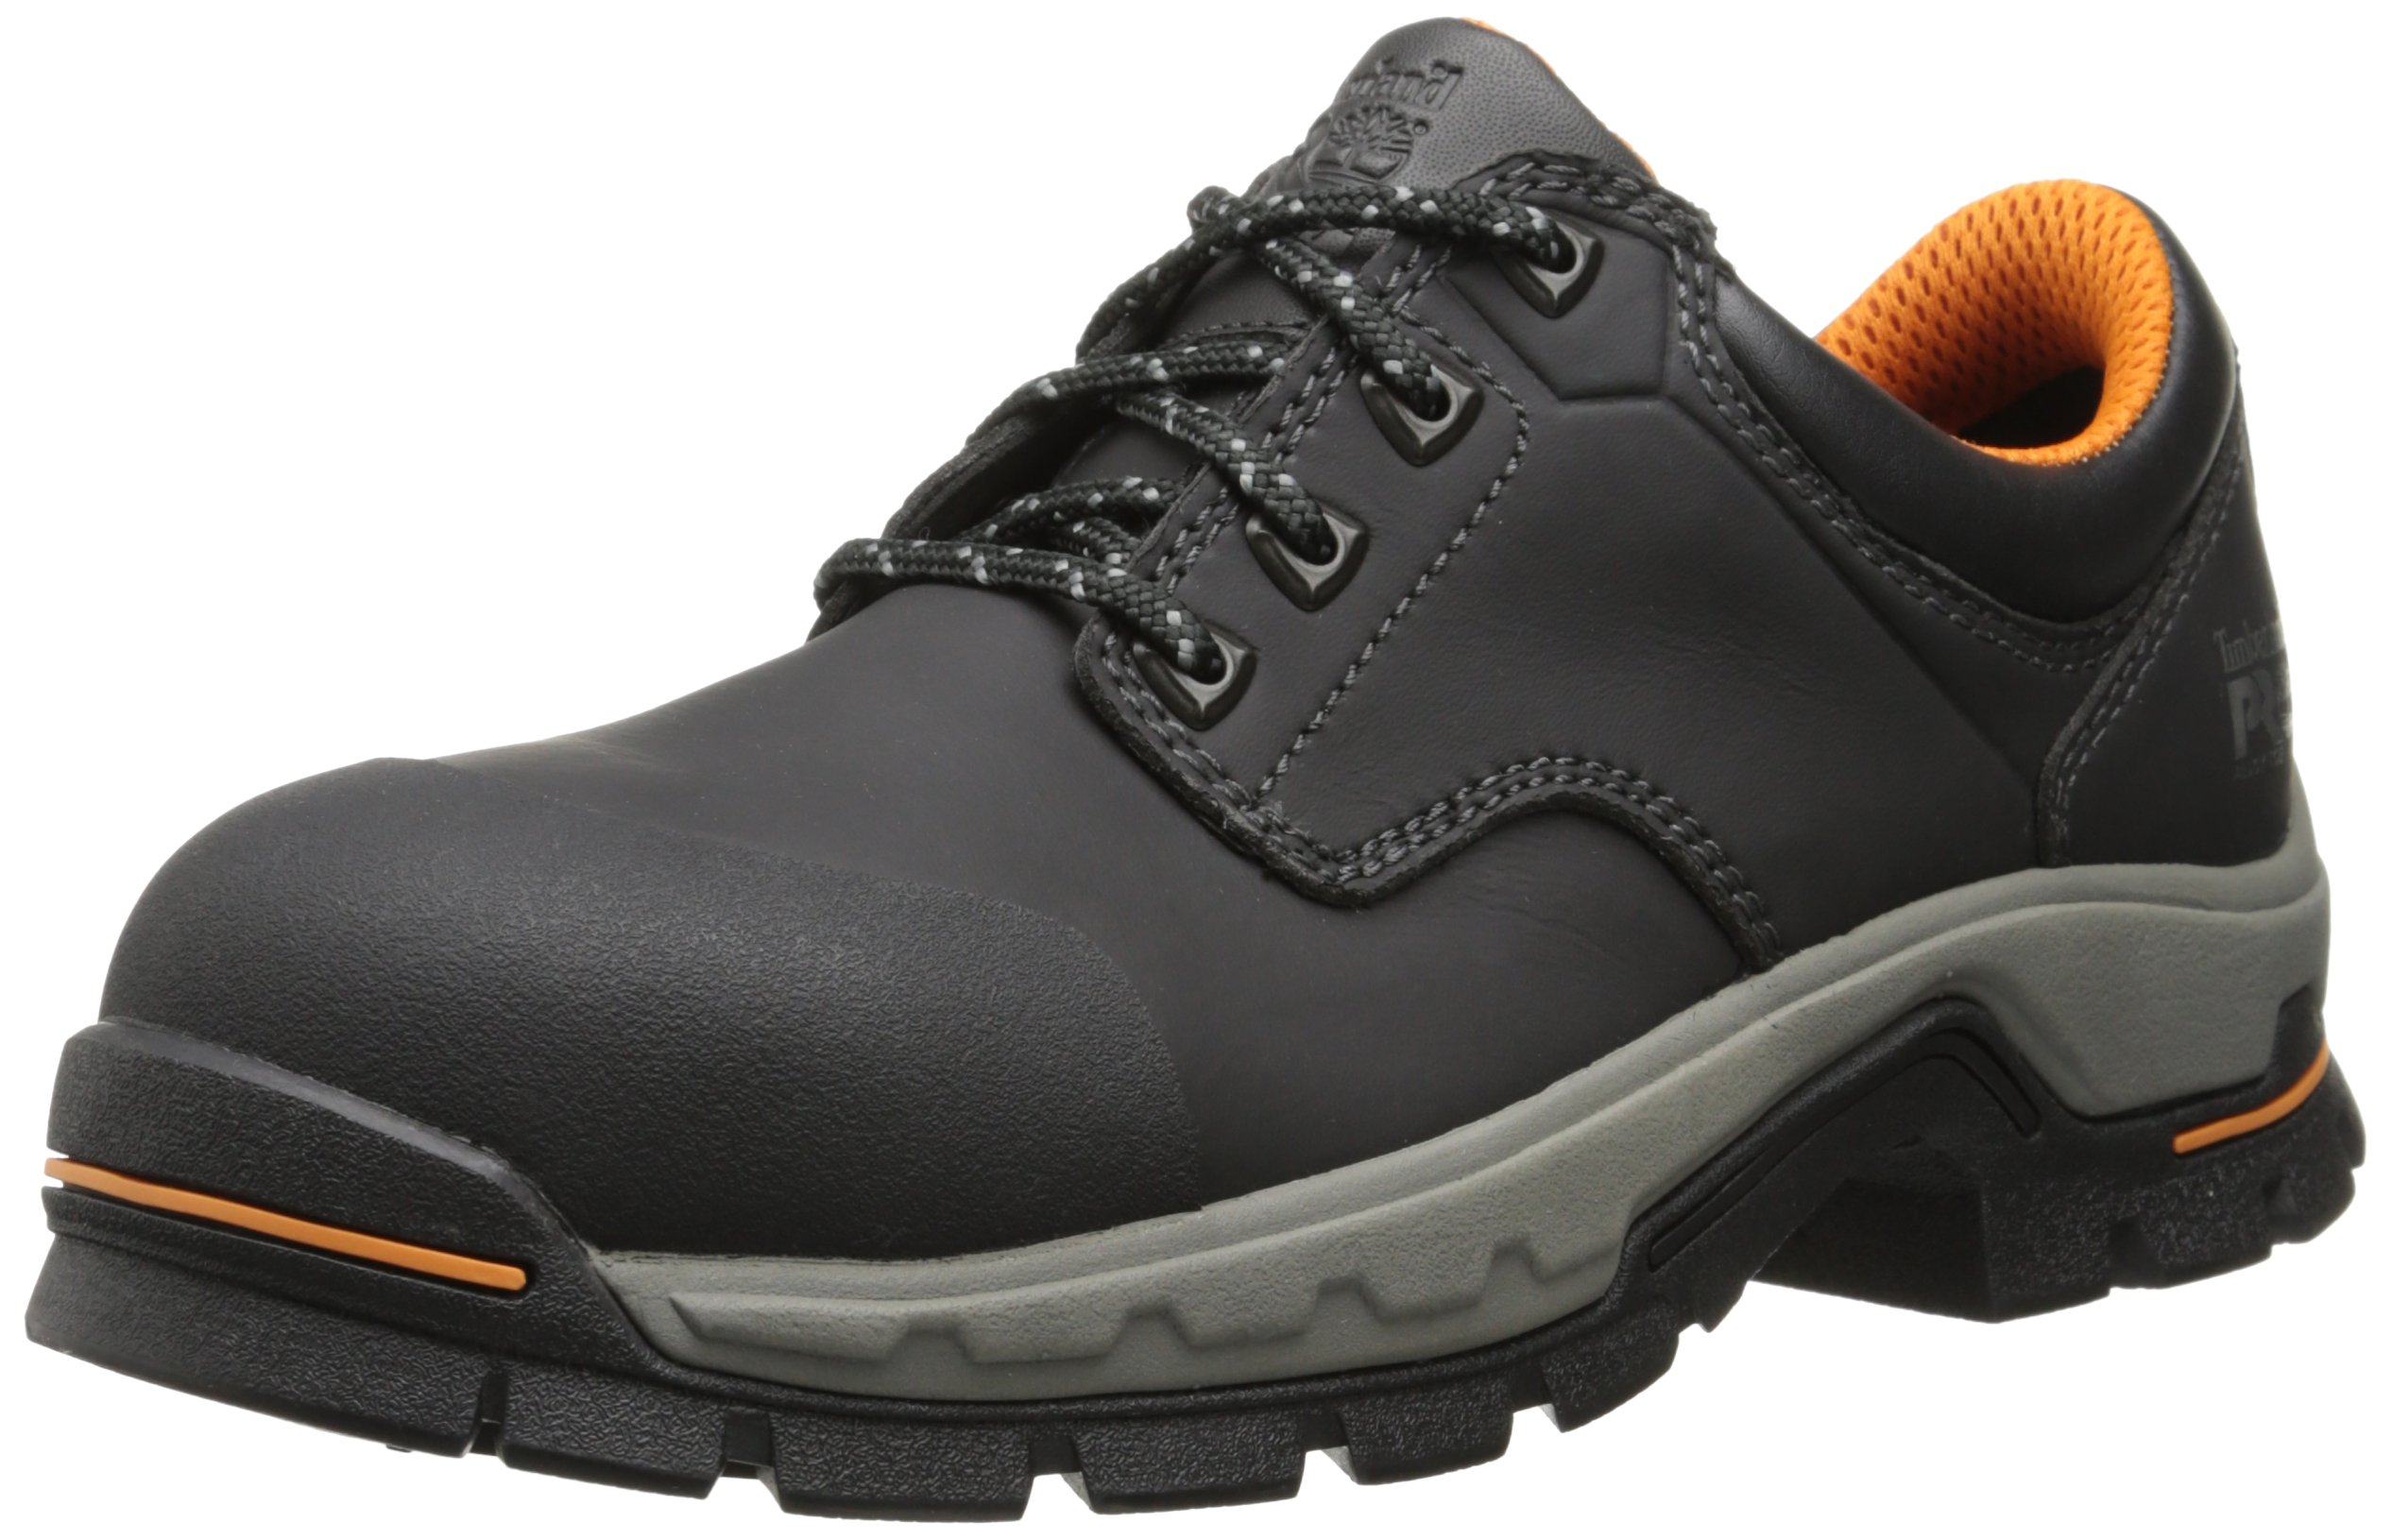 Timberland PRO Men's Stockdale Grip Max OX Alloy Toe Work and Hunt Boot, Black Microfiber, 7 M US